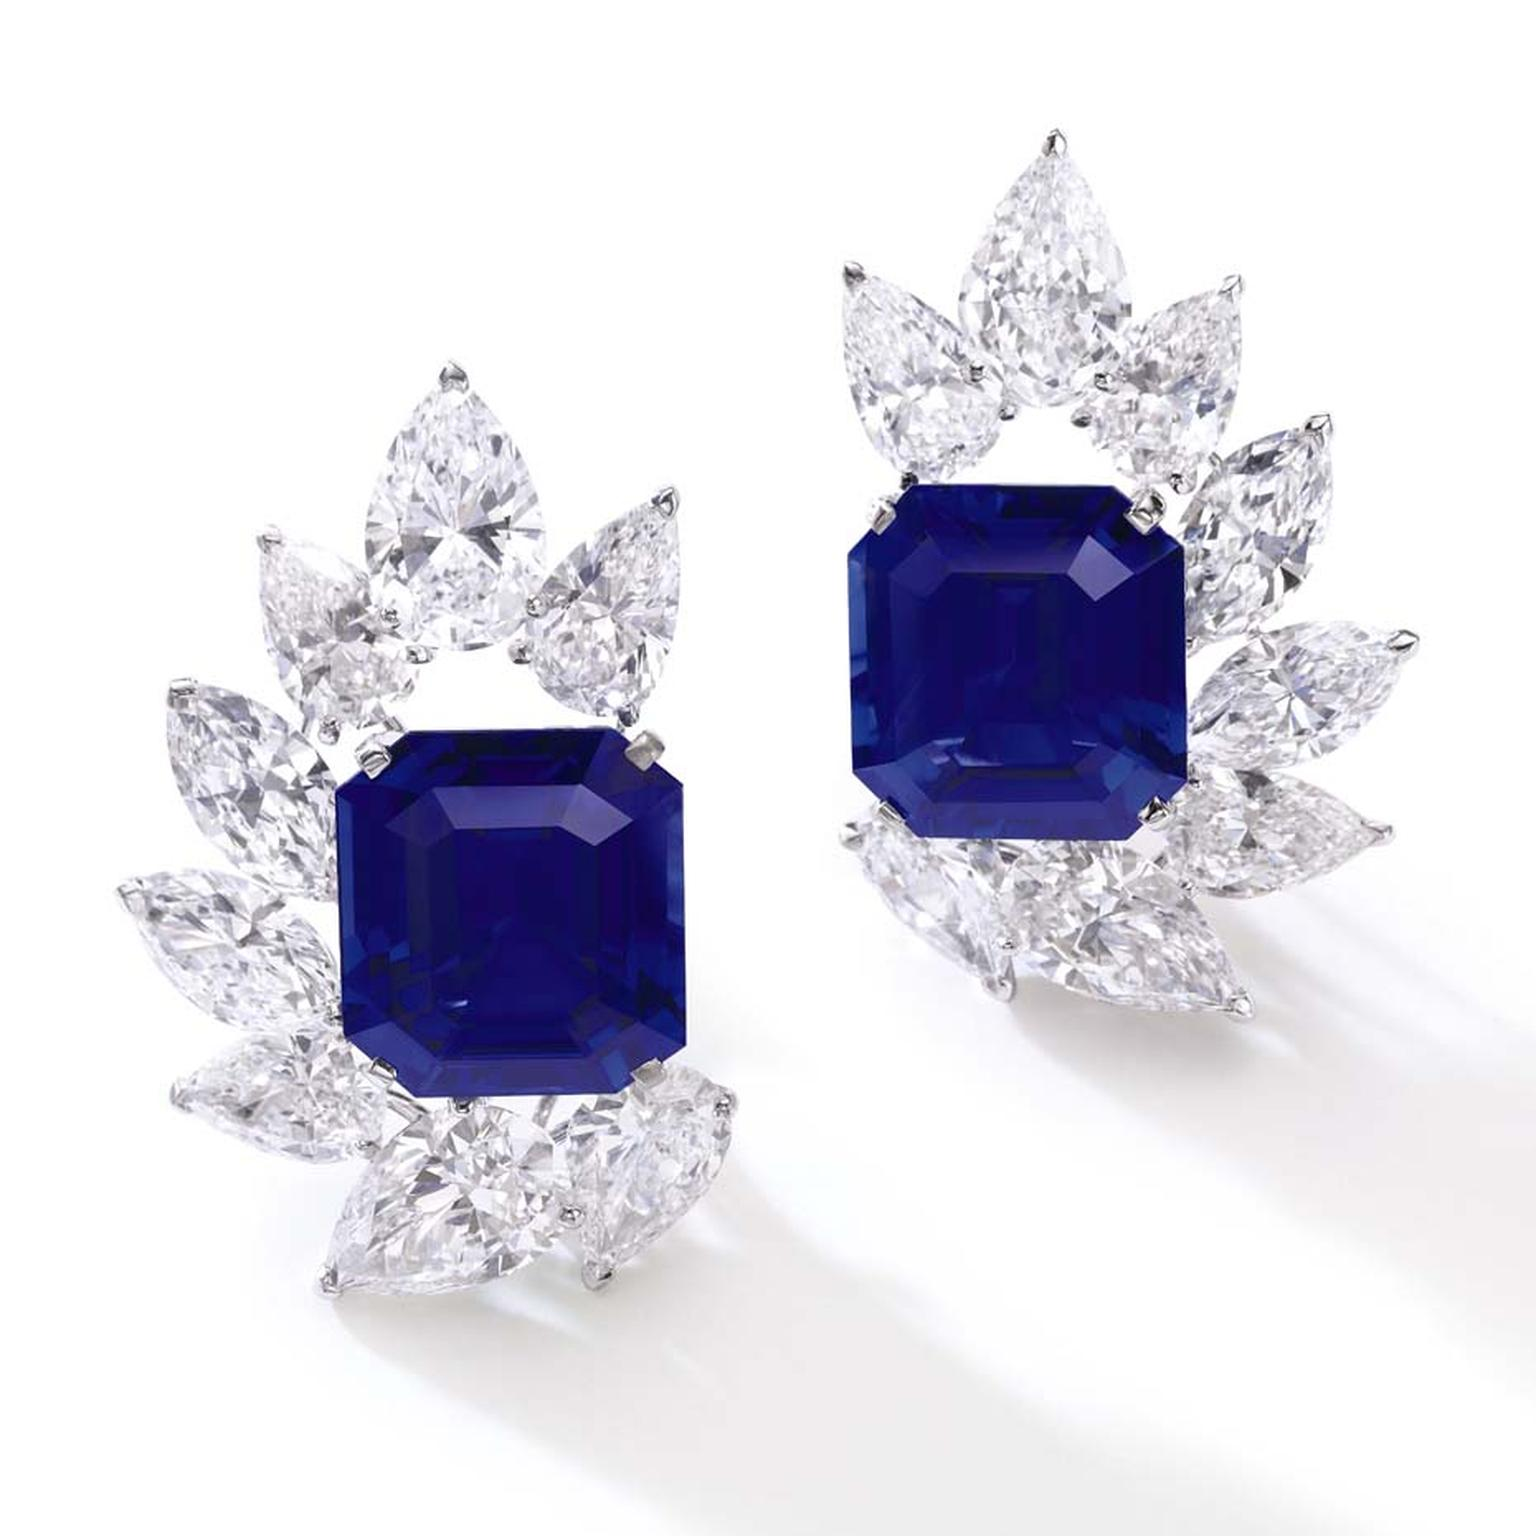 This pair of Burmese sapphire and diamond ear clips sold for $3.42 million at Sotheby's Geneva Magnificent Jewels and Noble Jewels spring sale, setting a new world record for a pair of Burmese sapphire earrings.